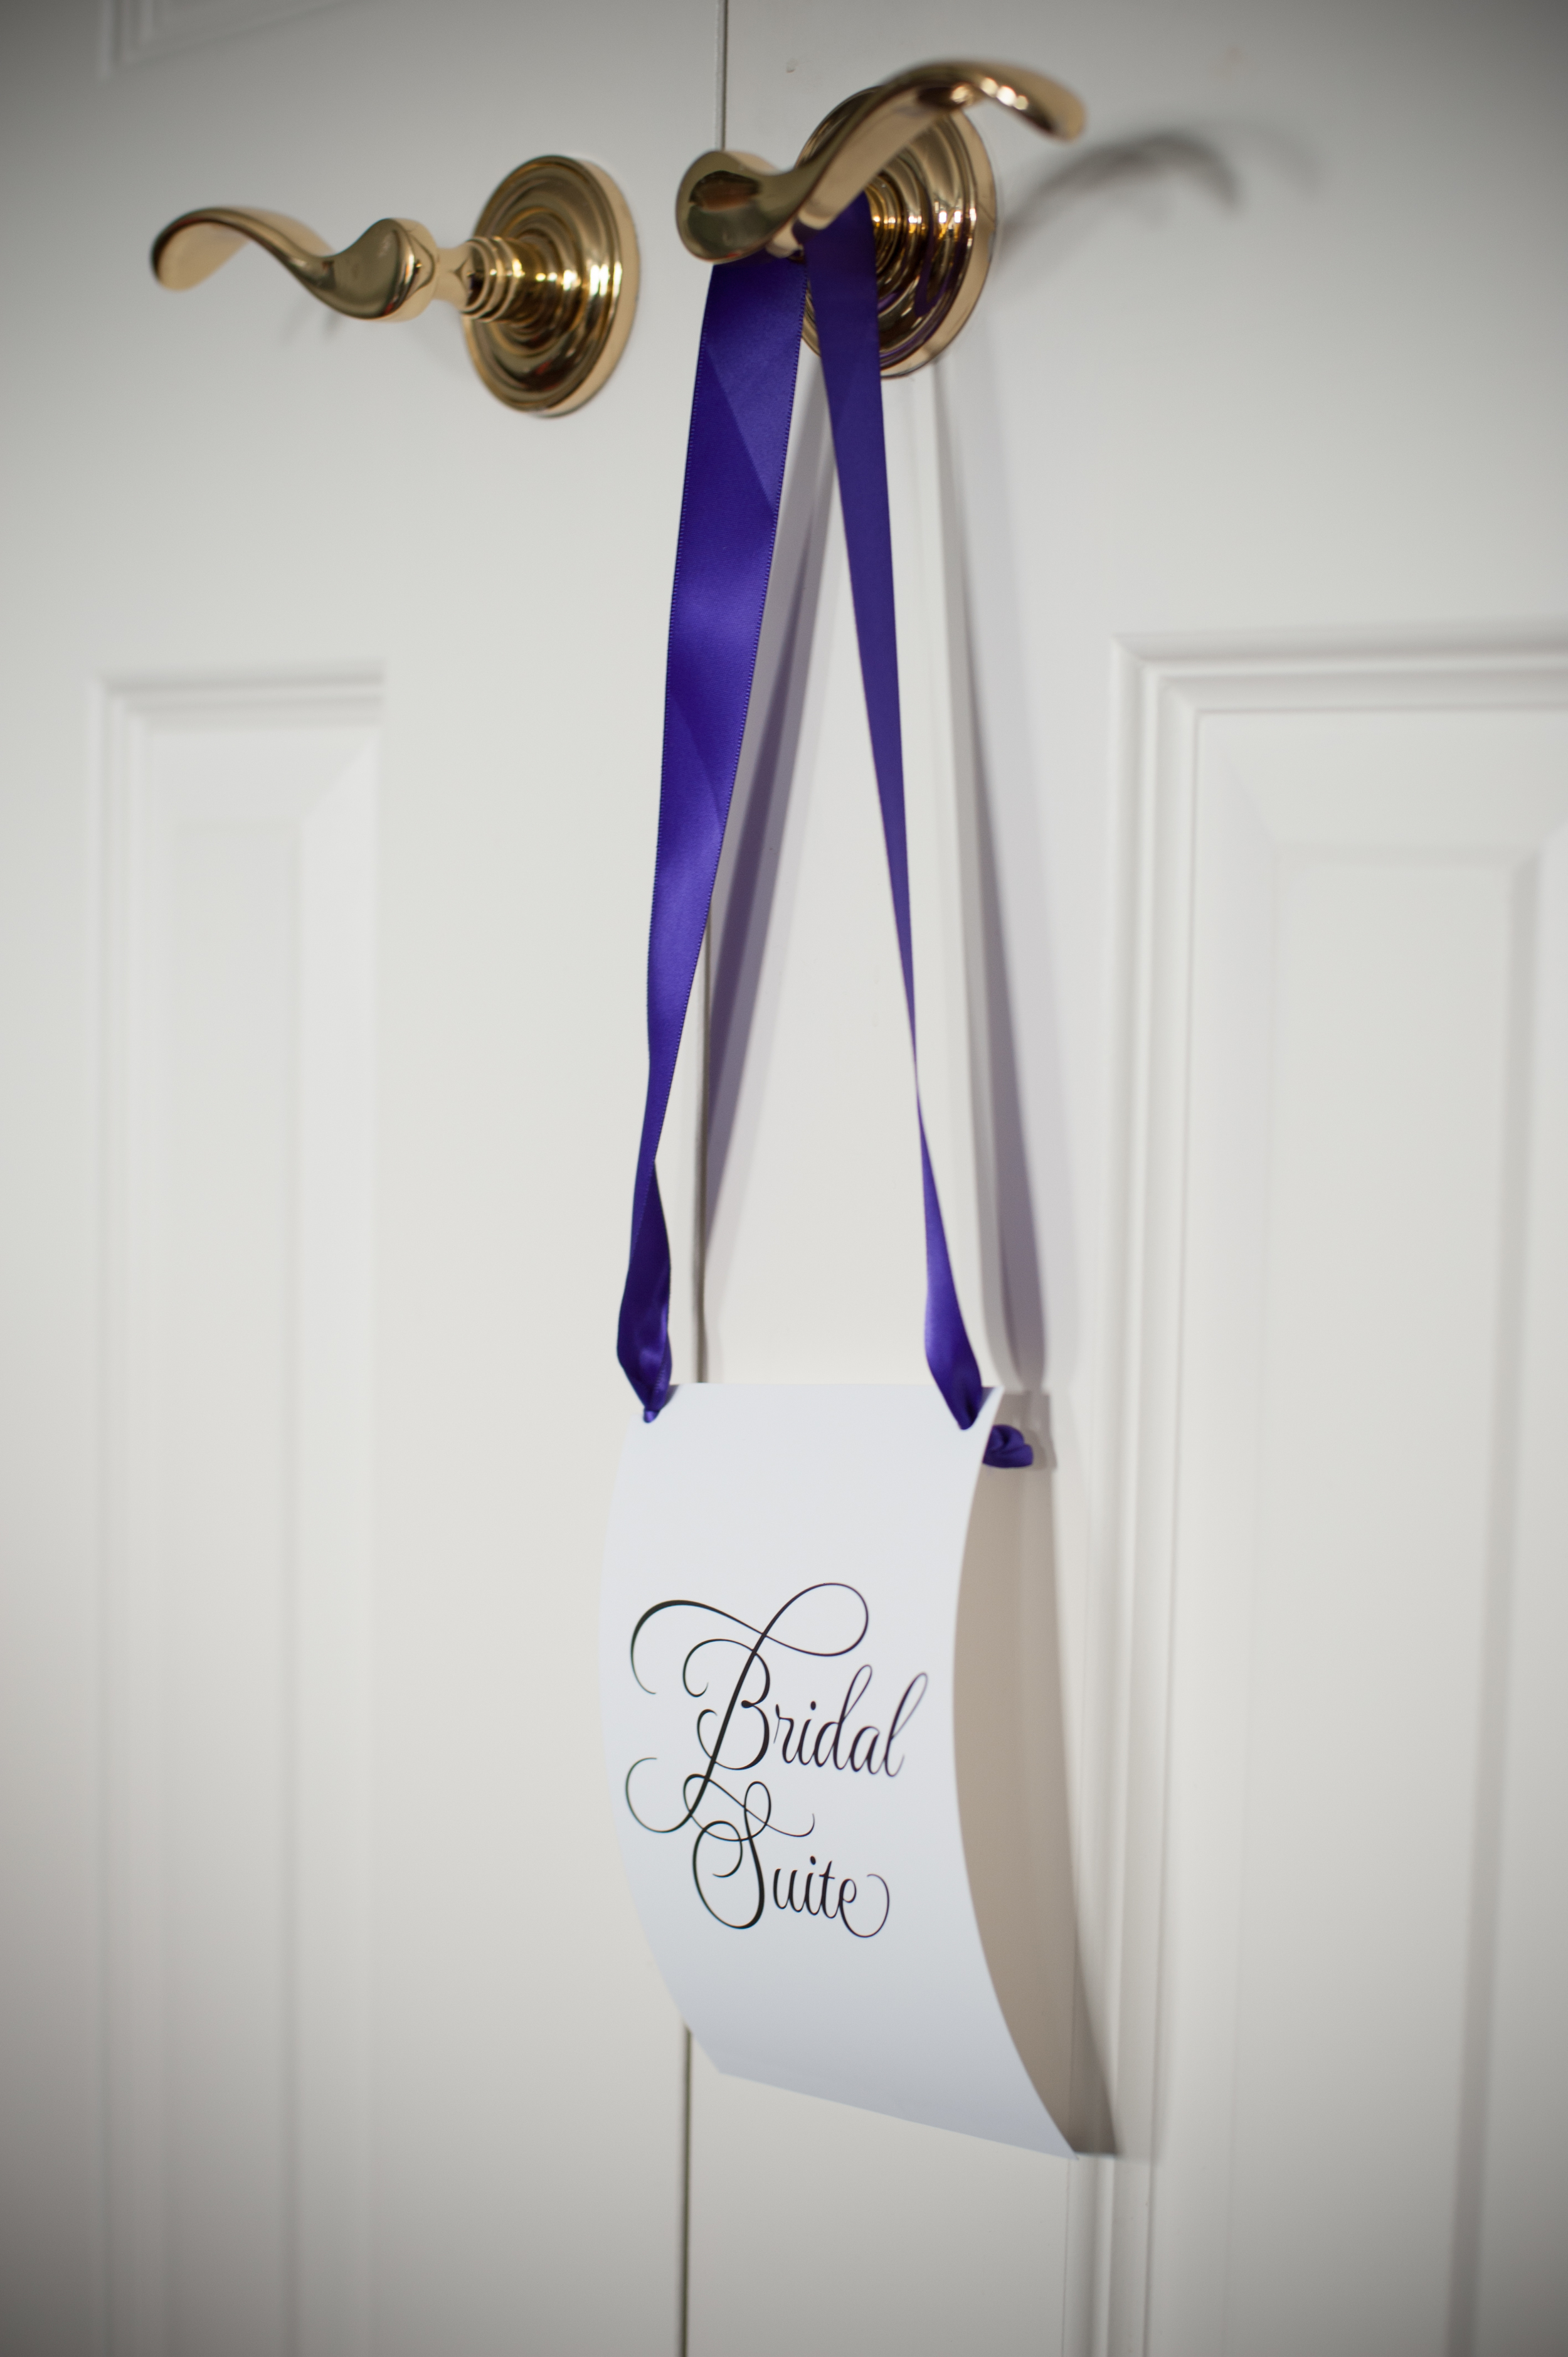 Its the little things by  Roseville Designs